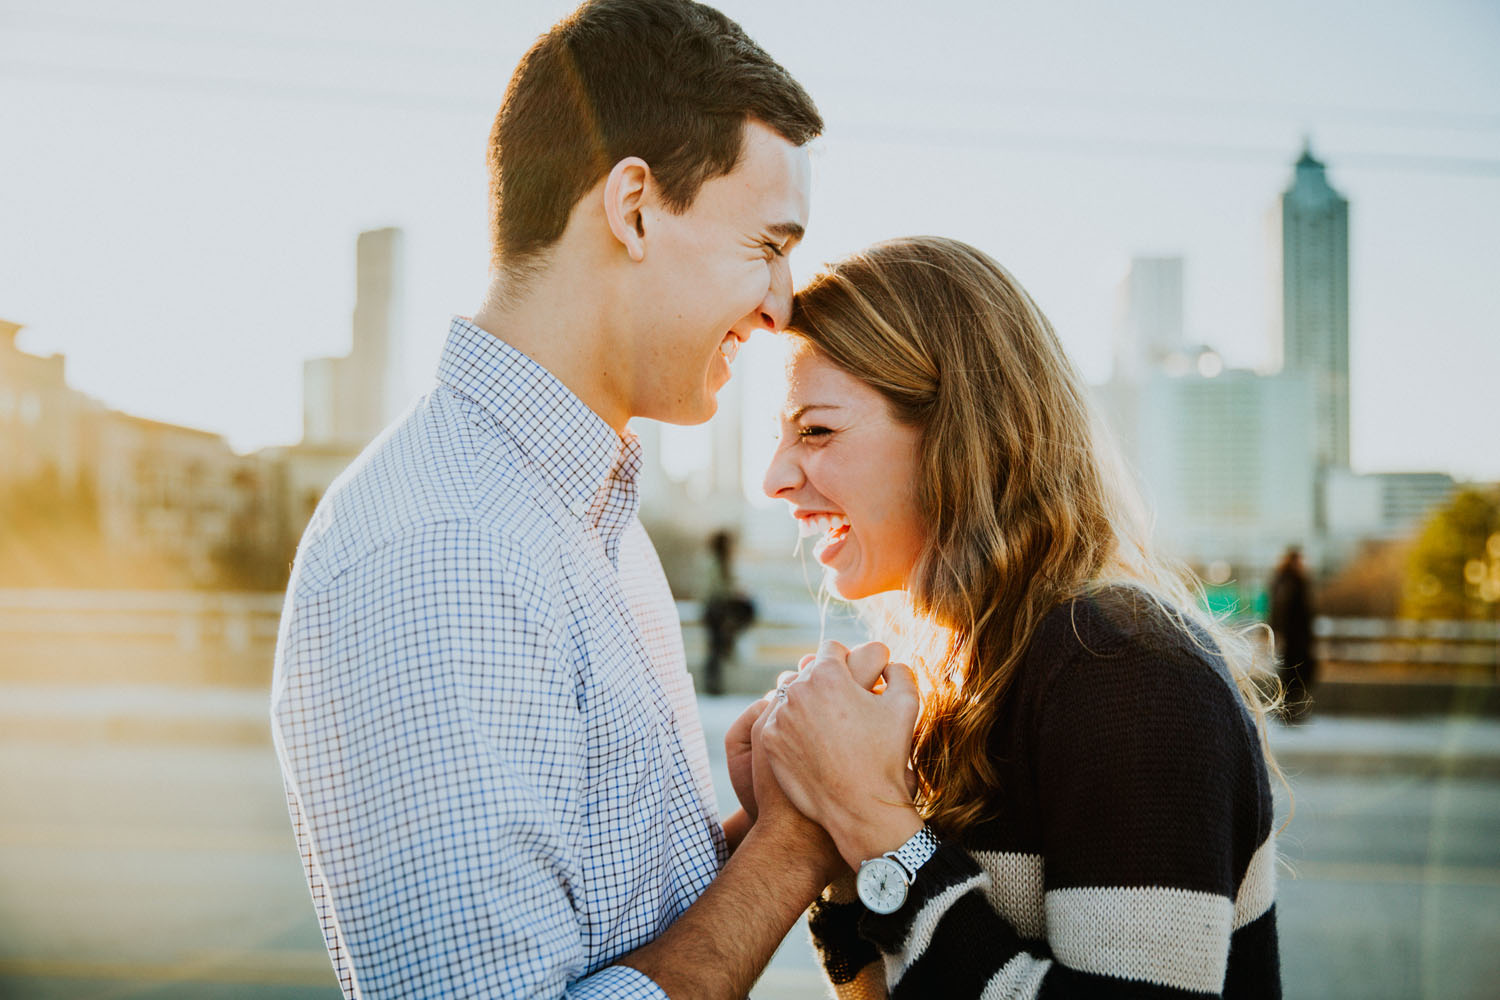 Atlanta best engagement photographers wedding photographer Ga Tech photography Jackson street bridge _ Atalie Ann Photo _1019.jpg